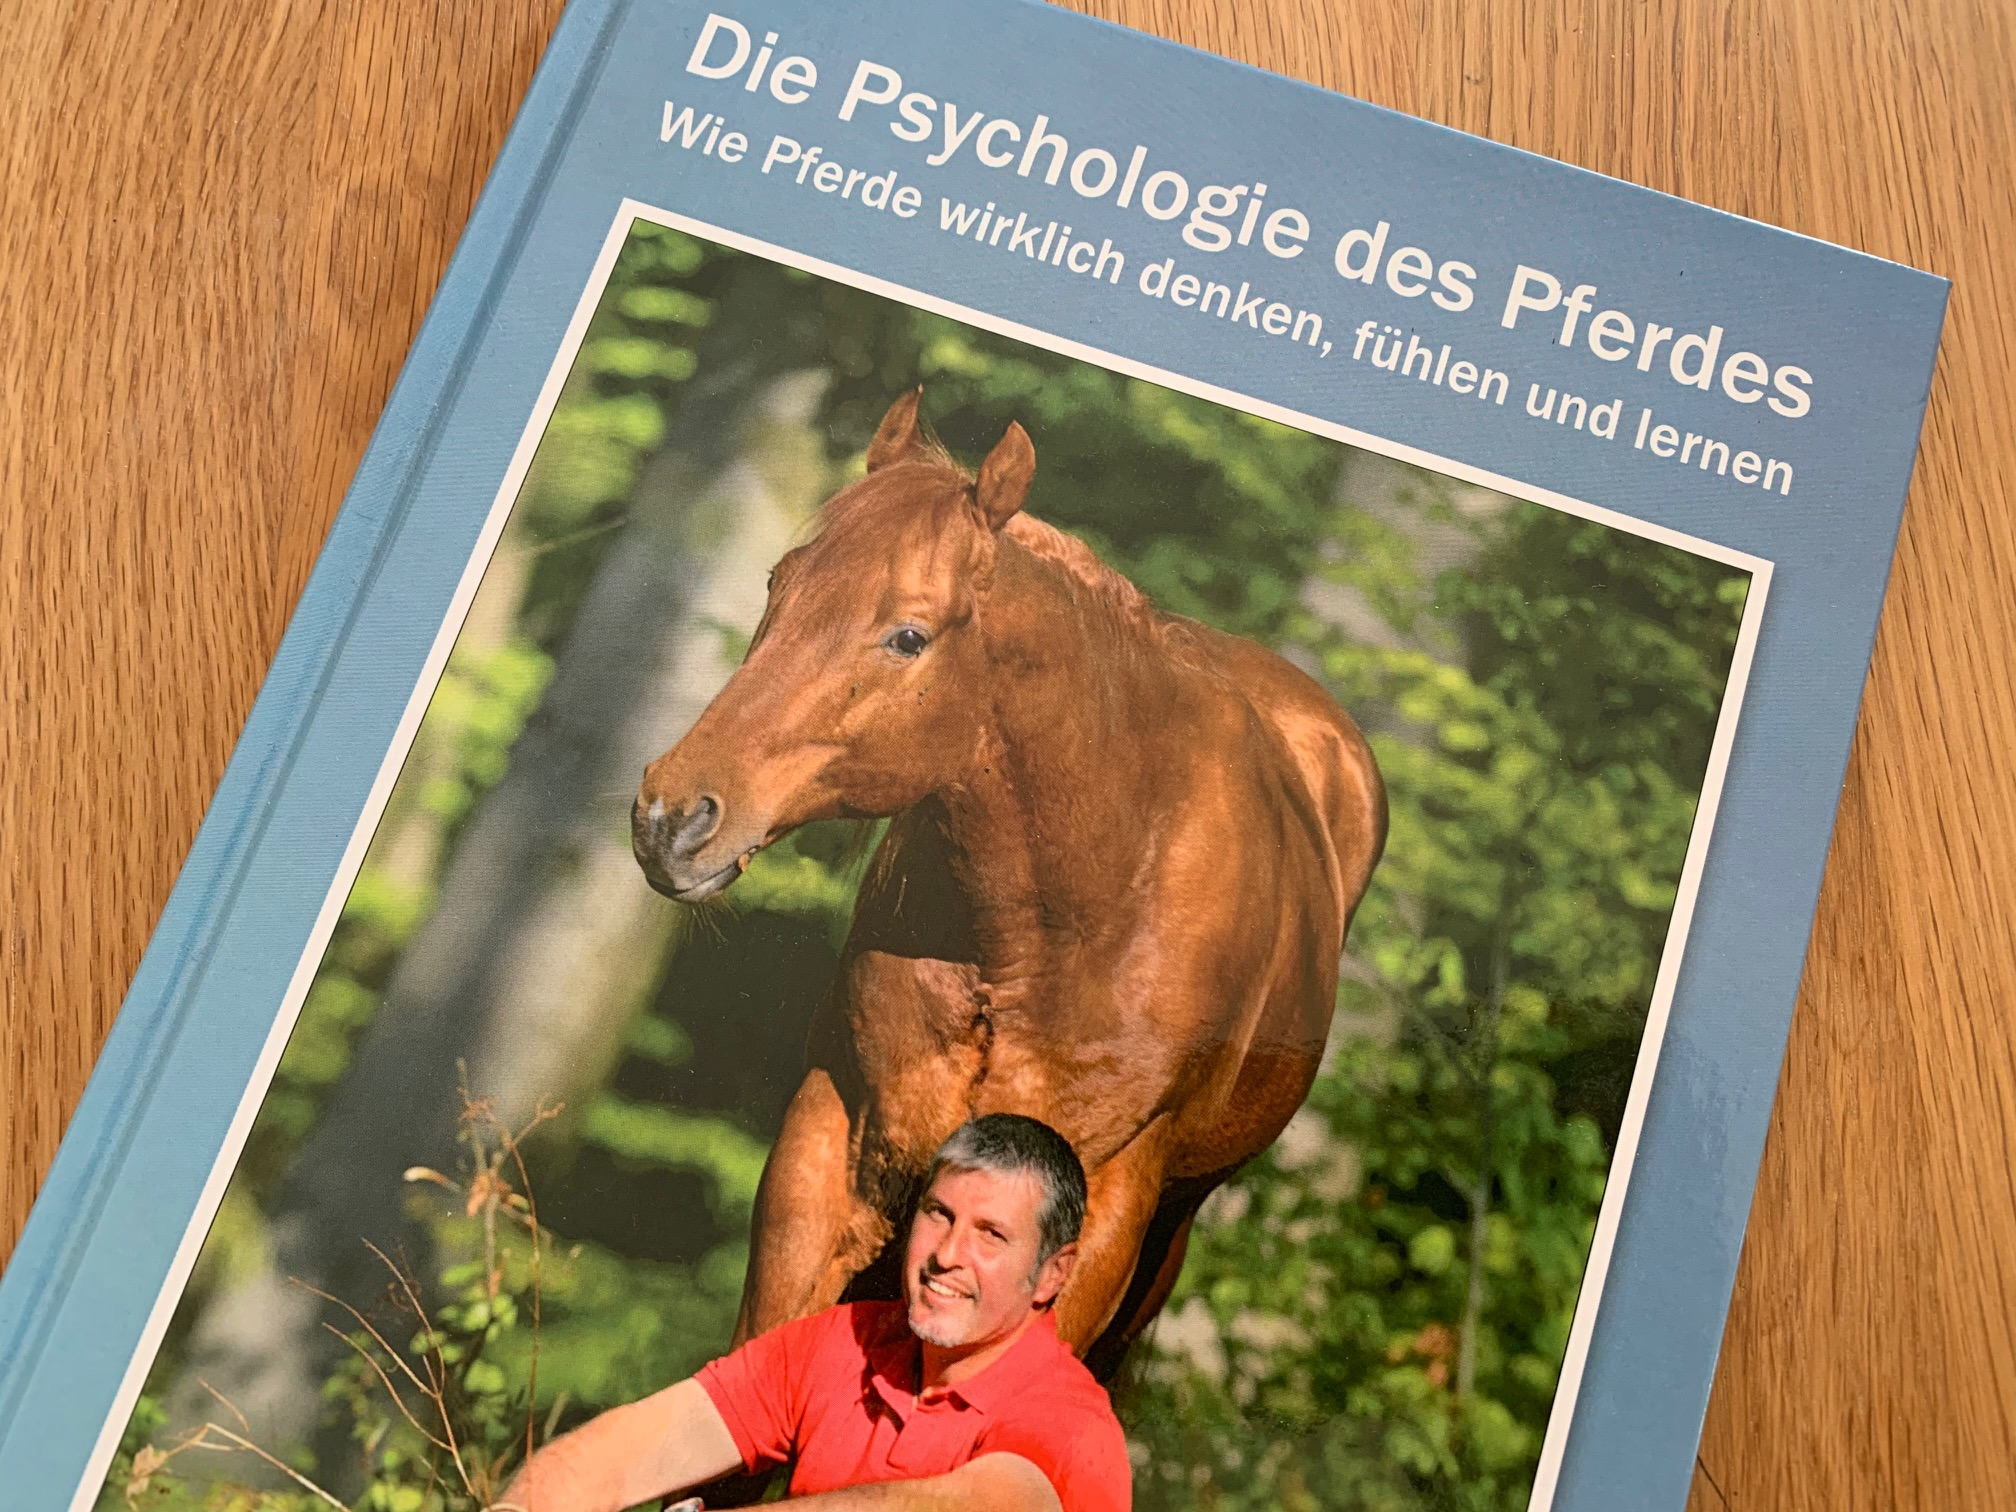 Büchermonat November: Die Psychologie des Pferdes [Rezension]